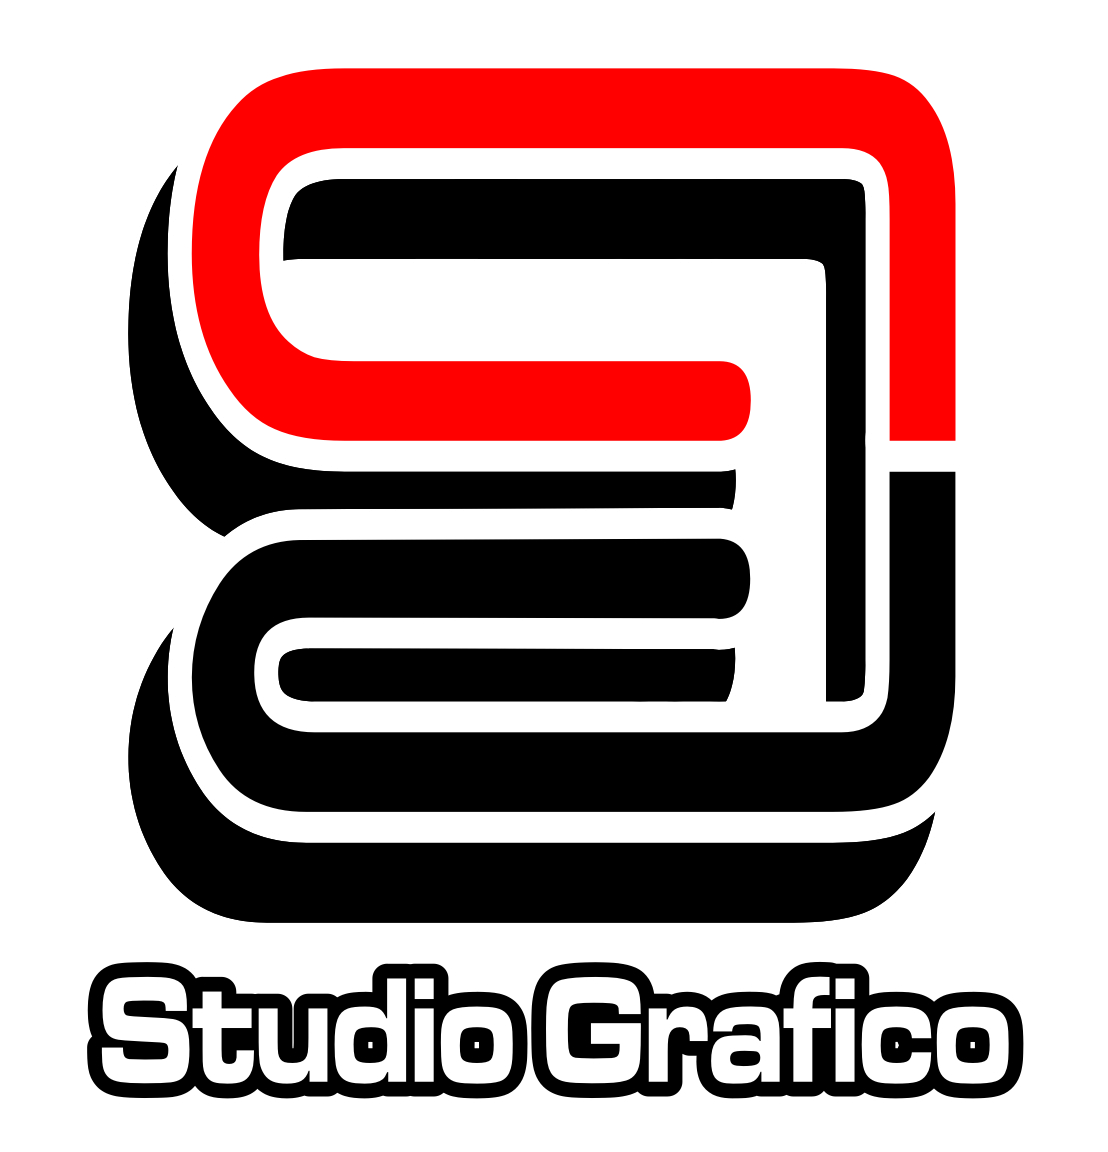 Art Design Studio Grafico